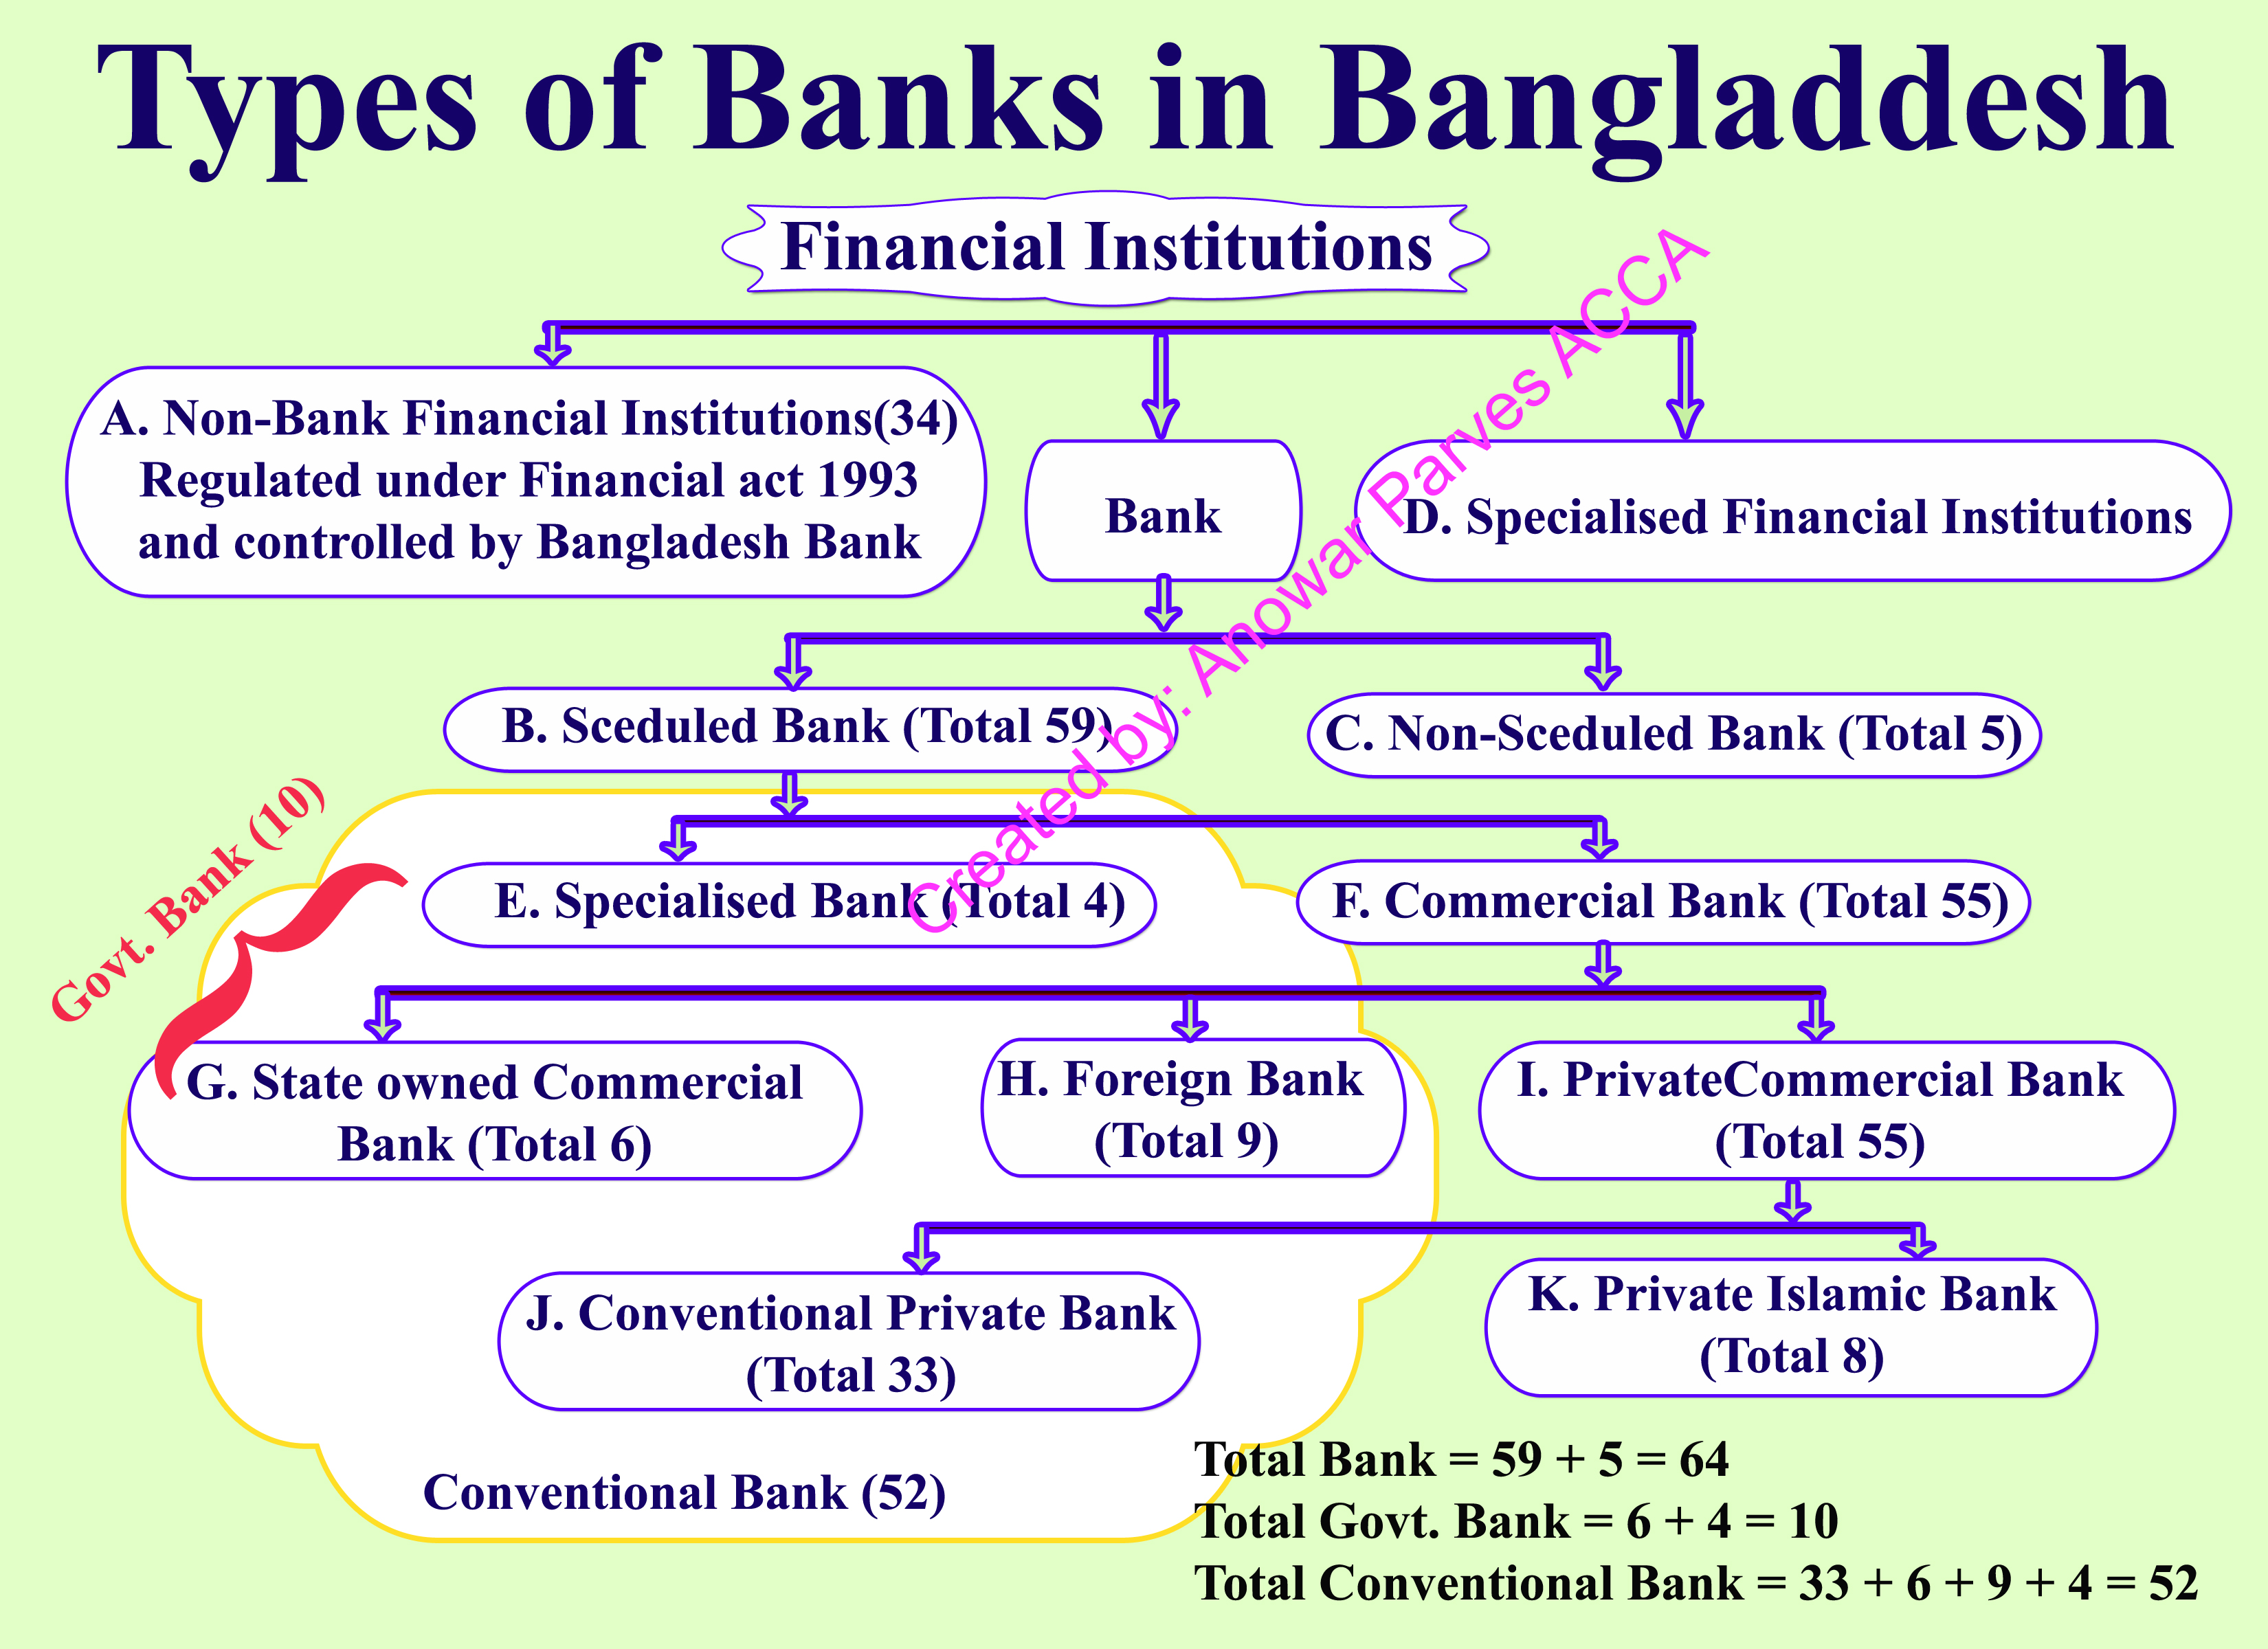 Financial Institutions, financial,financial literacy,financial institution,financial institution in india,non-bank financial institution,institutions,loan from financial institutions,chapter -2 financial institutions,examples of financial institutions,non banking financial institutions,chairman of financial institutions,headquarter of financial institutions,indian financial system, banking,banking structure in india,structure of banking,structure of banking in india,banking structure of india,structure of indian banking system,indian banking system,indian banking,banking system in india,banking in india,indian banking structure,tamil indian banking structure,banking structure in india.ibps,banking struture in india,baning structure tree diagram,banking system in india in hindi, banking,fractional reserve banking,usa,retail banking (industry),finance,international banking system,laws relating to banking & insurance,automated banking machine,shadow banking,hrm in banking organizations,central banking,offshore banking,investment banking,effective banking communication,united states,u.s. offshore banking,federal reserve,financial,career in investment banking,career as a investment banking, types of banking,different types of banks in india,types of banking in india,types of banks in india,types of cheques,types of banks and their functions,bank,types of bank,types of banks,types of cheques in hindi,list of banks in india,different types of cheques,types of bank loans in india,different types of banks of USA